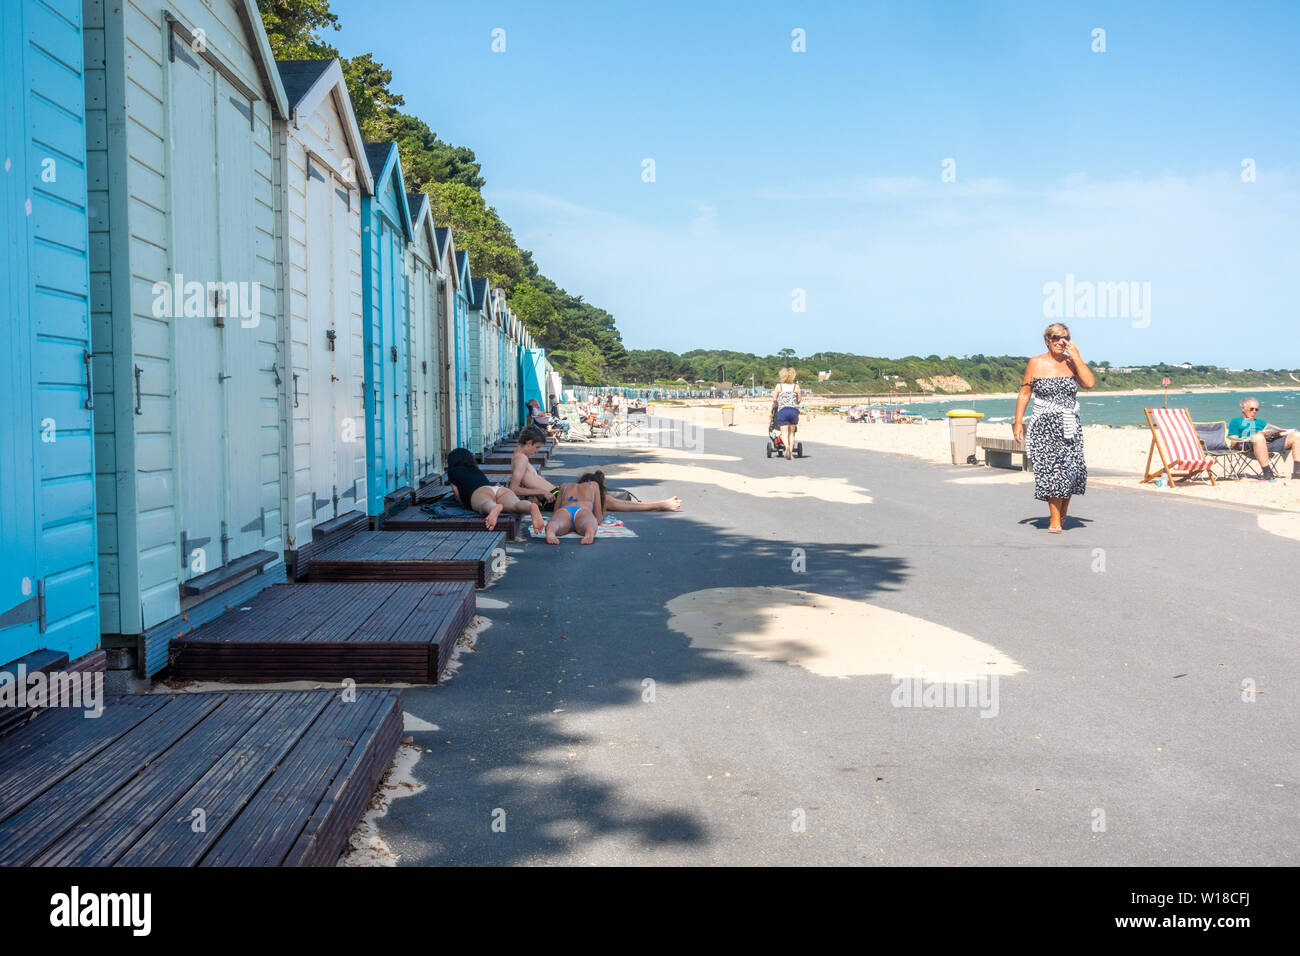 Row of beach huts in different pastel blue shades run along the top of Avon Beach at Mudeford, Christchurch in Dorset, UK. A sandy beach with pebbles. Stock Photo